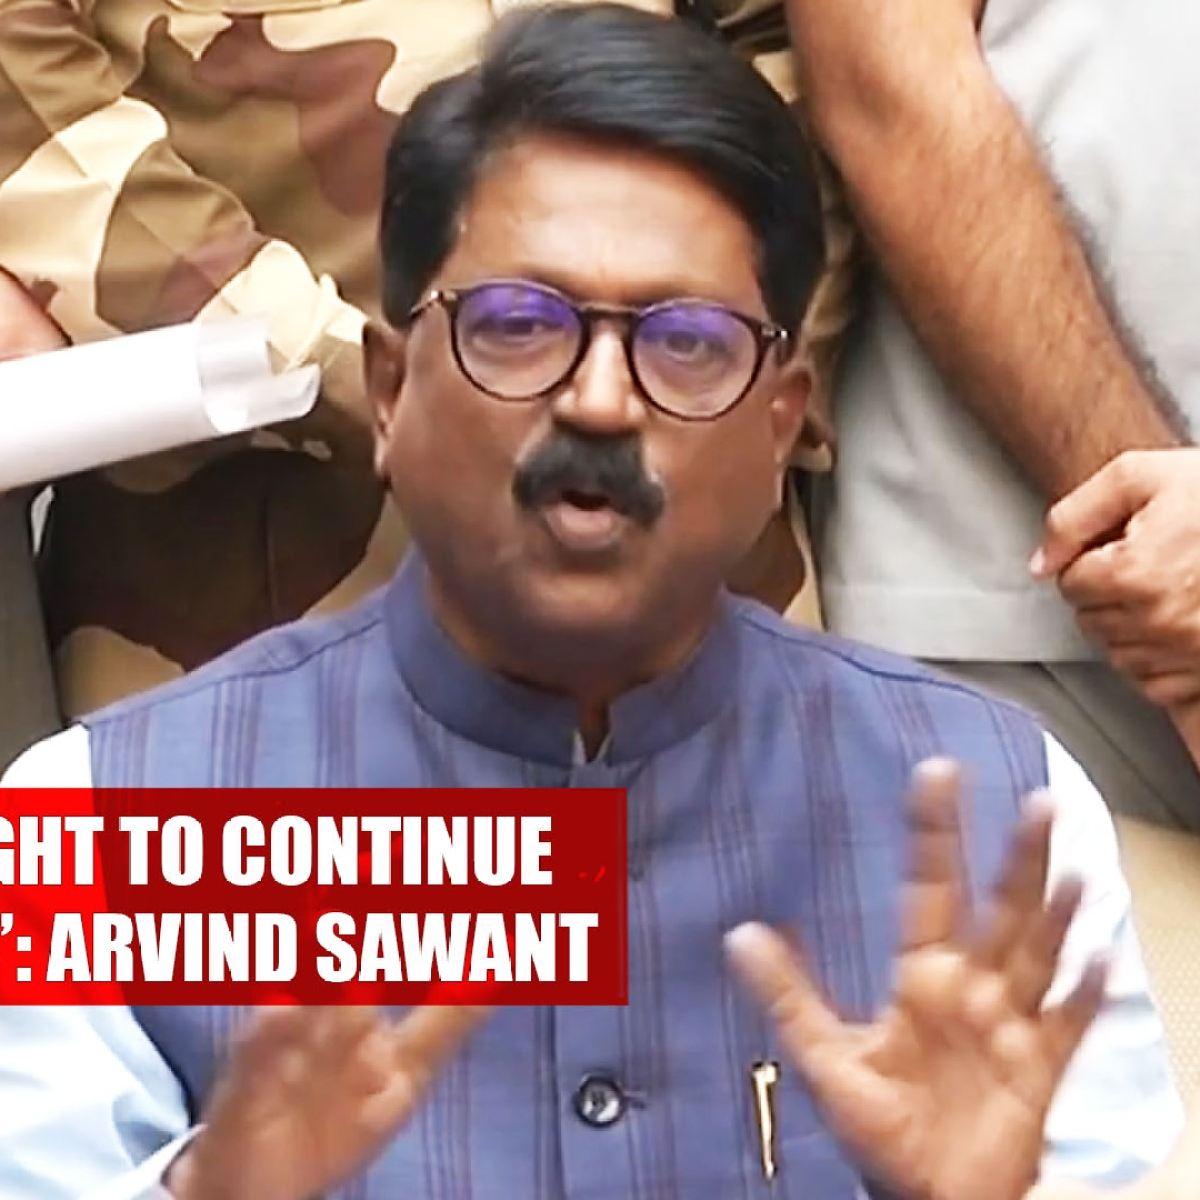 Arvind Sawant: 'Not Morally Right To Continue As Cabinet Minister'